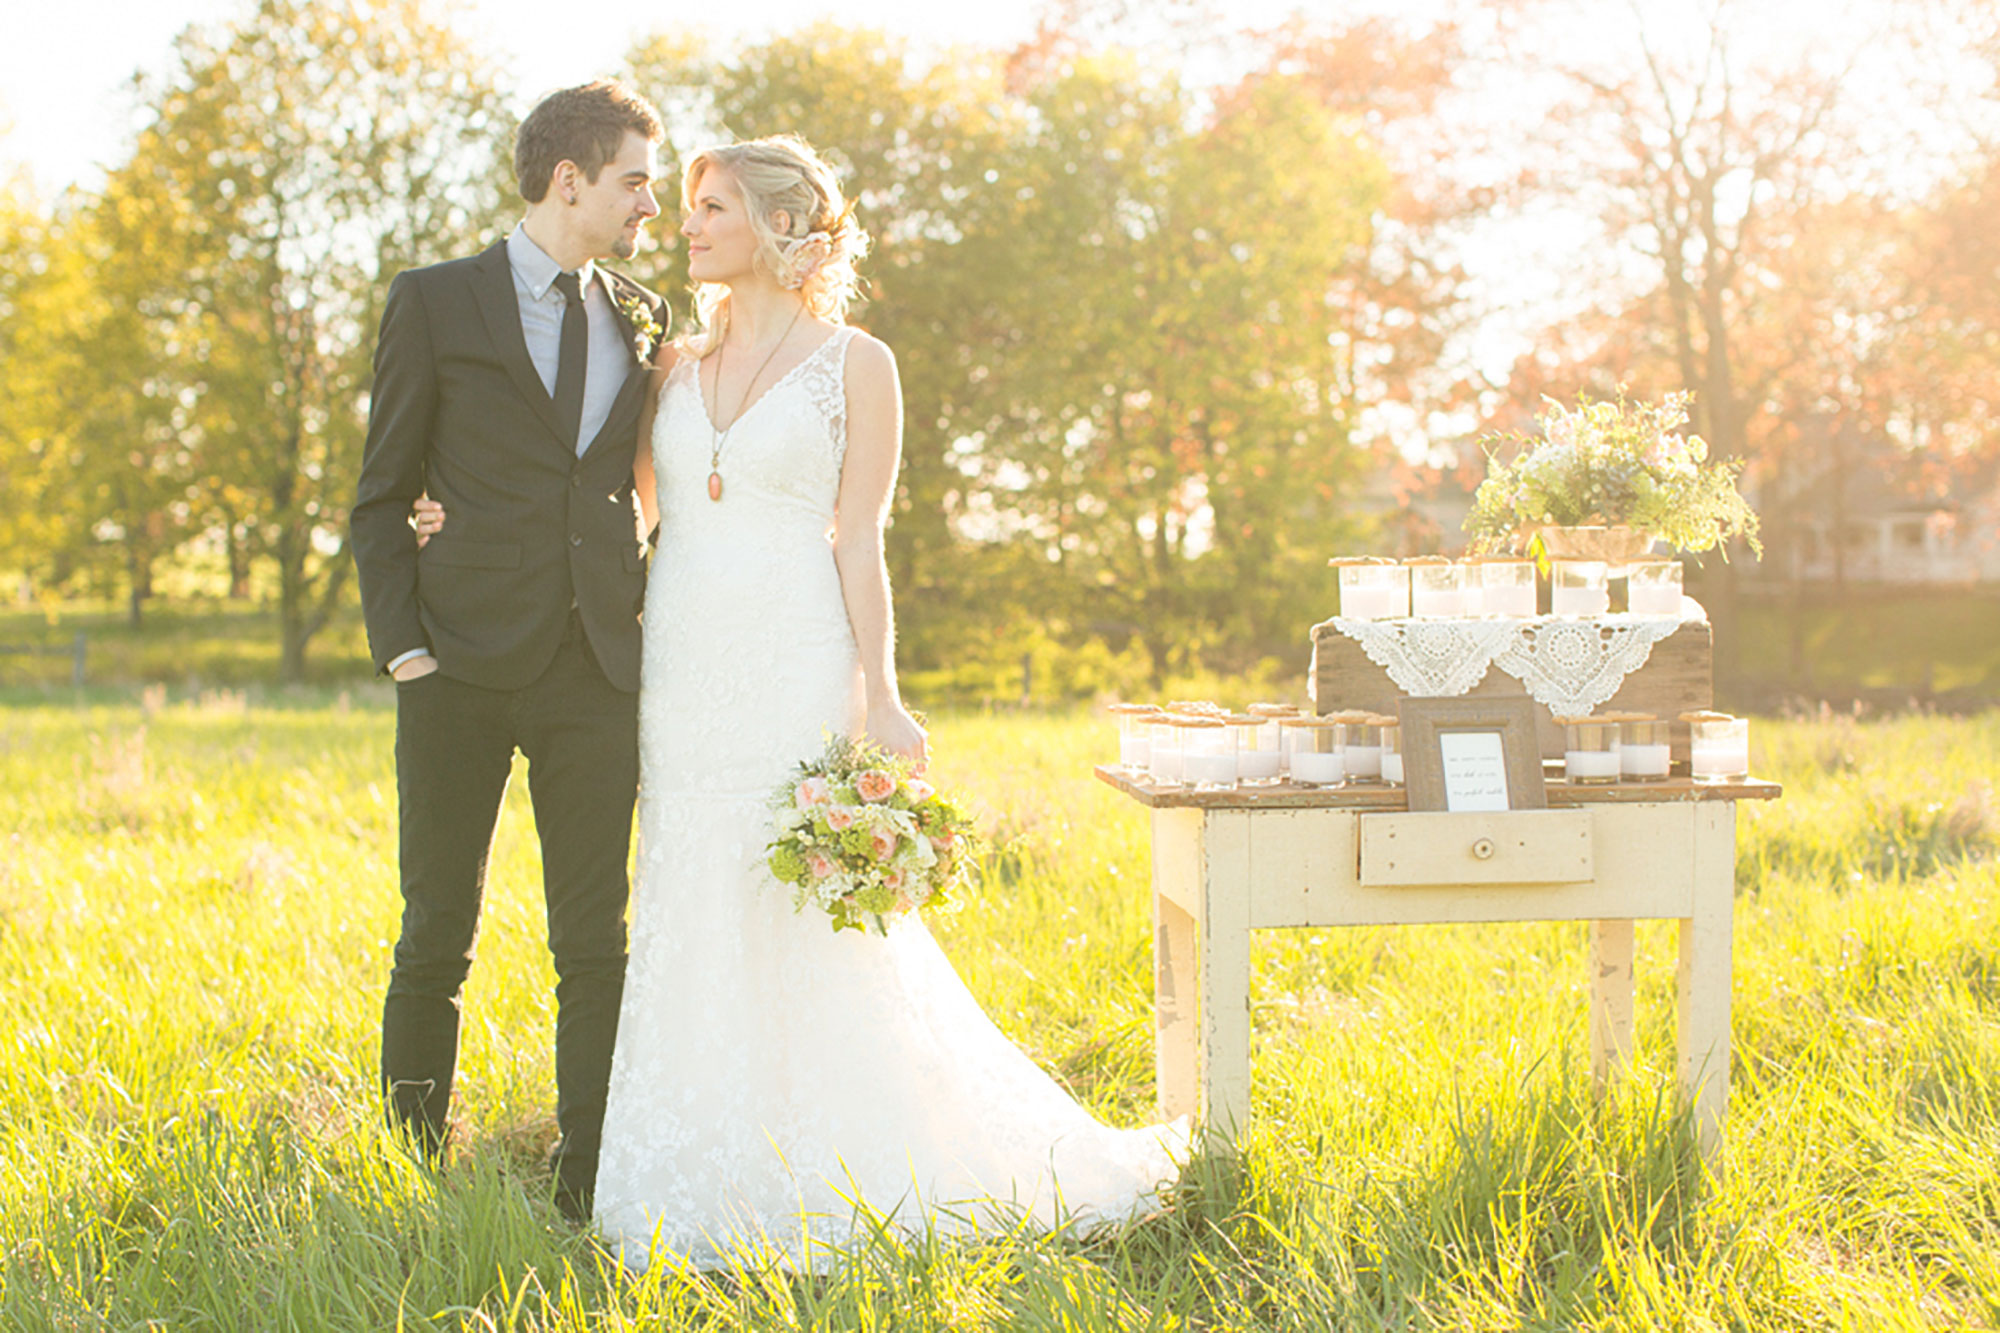 Scotsdale-Farm-Editorial-Vineyard-Bride-Photo-By-Carolyn-Bentum-Photography-035.jpg